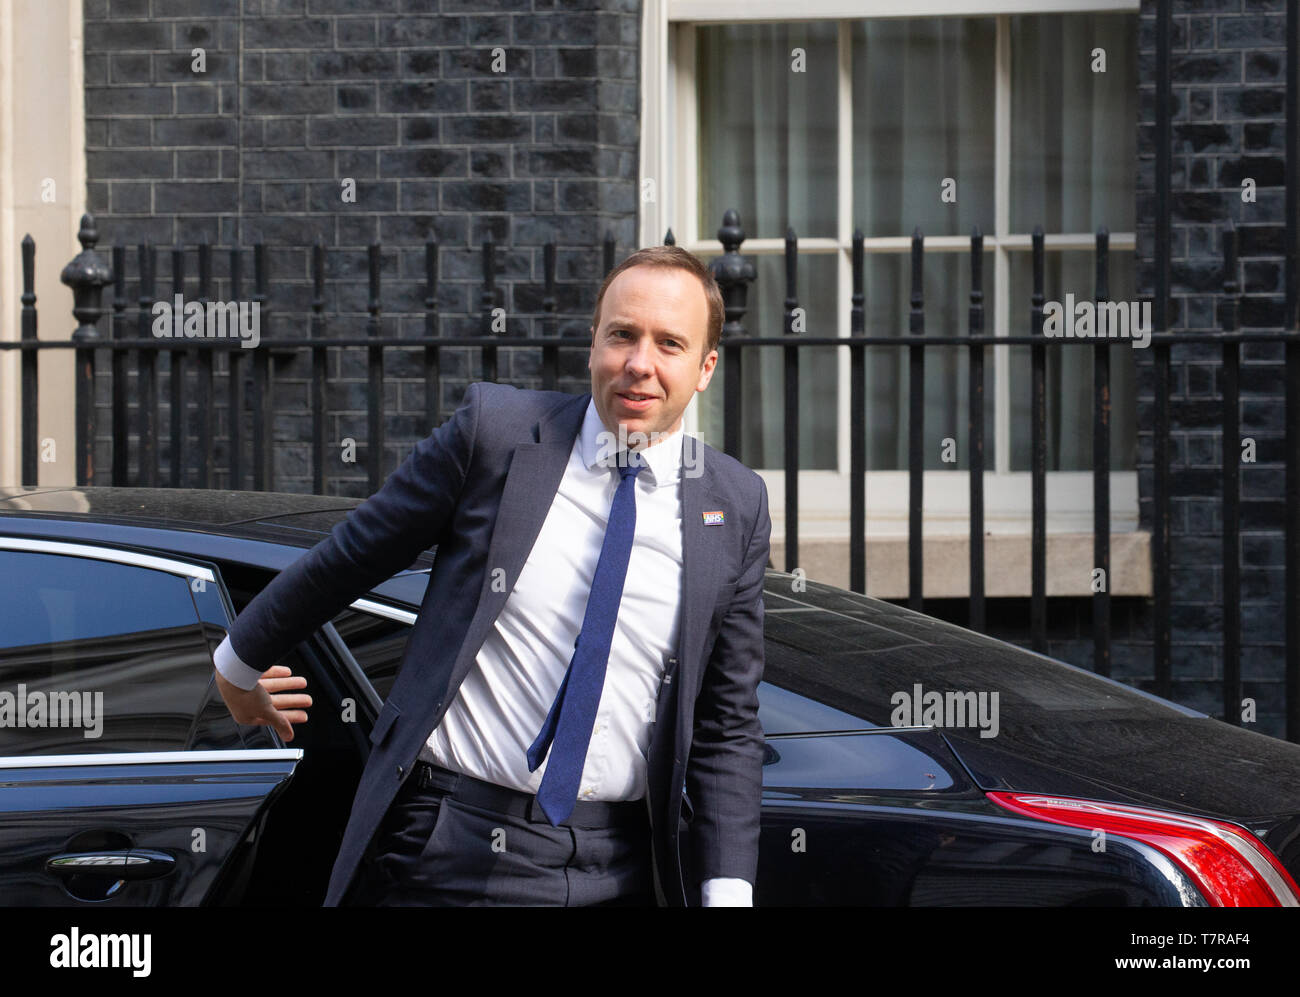 Matthew Hancock, Secretary of State for Health and Social Care, arrives at Downing Street for a Cabinet meeting. Stock Photo